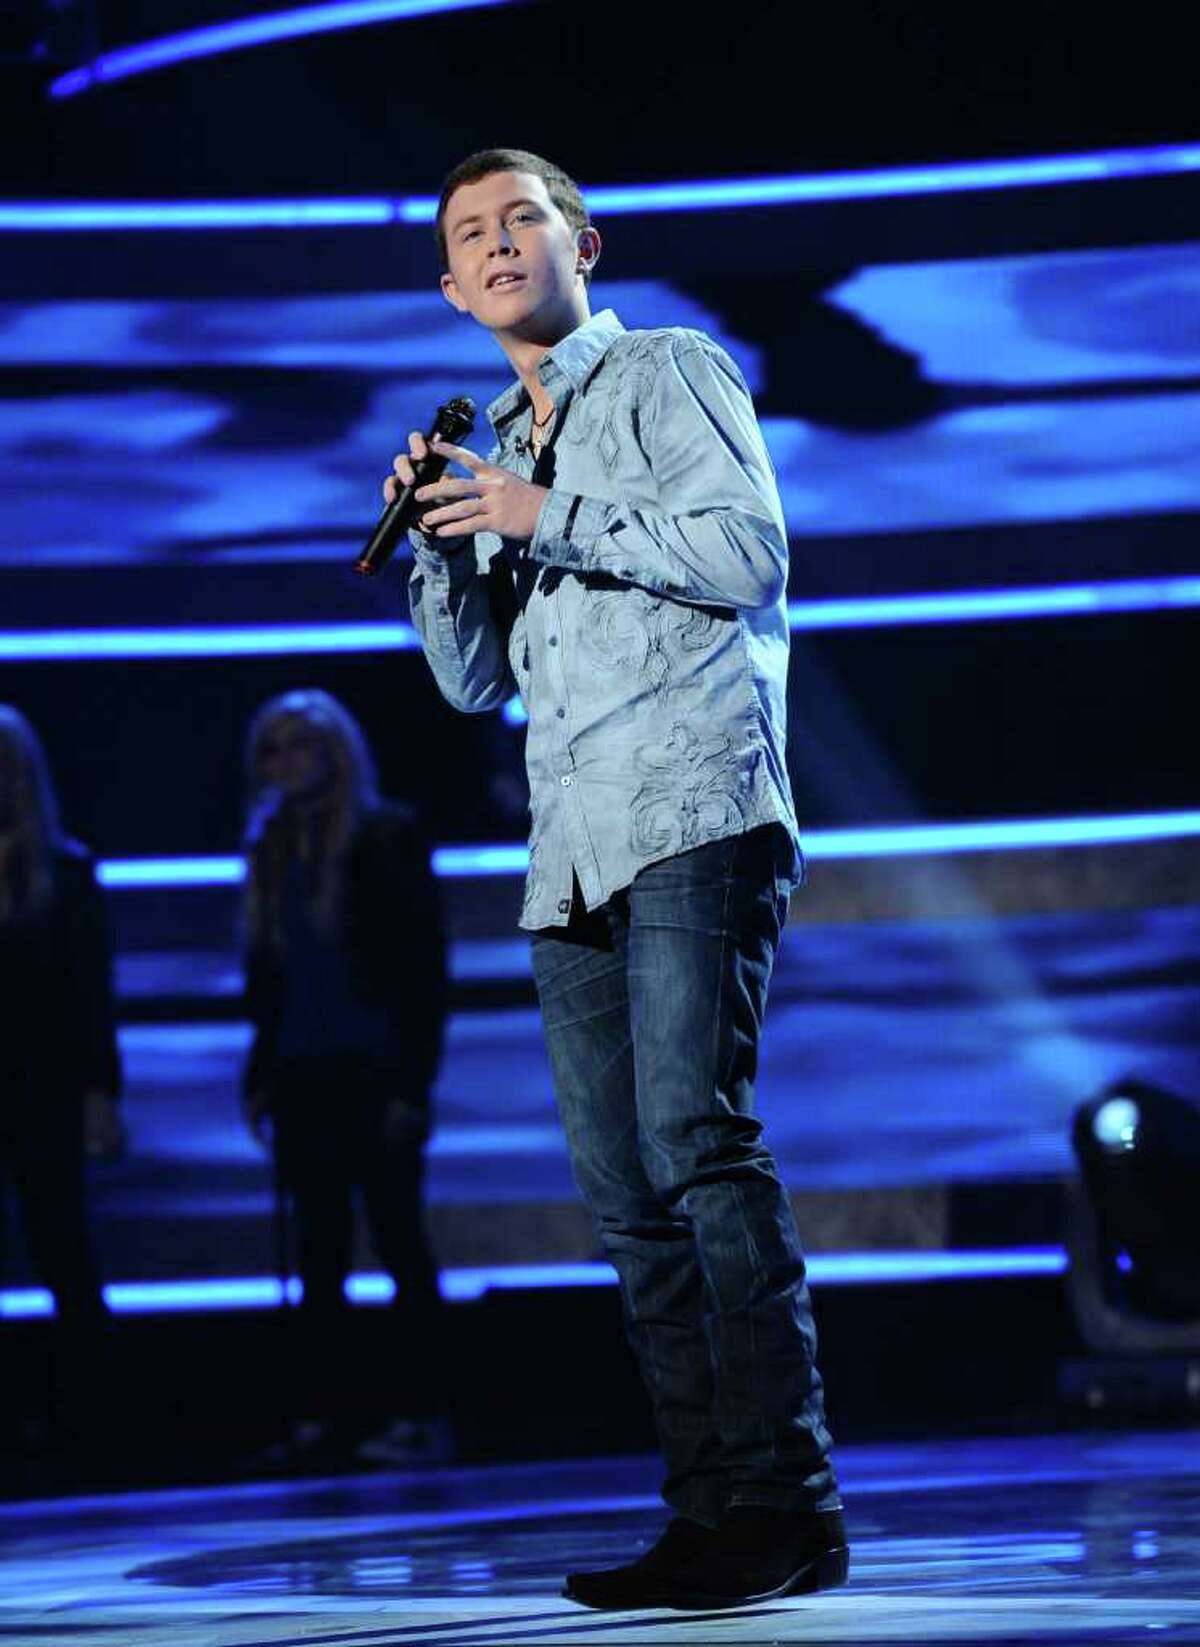 """In this publicity image released by Fox, Scotty McCreery performs on the singing competition series """"American Idol,"""" on Wednesday, March 9, 2011, in Los Angeles."""